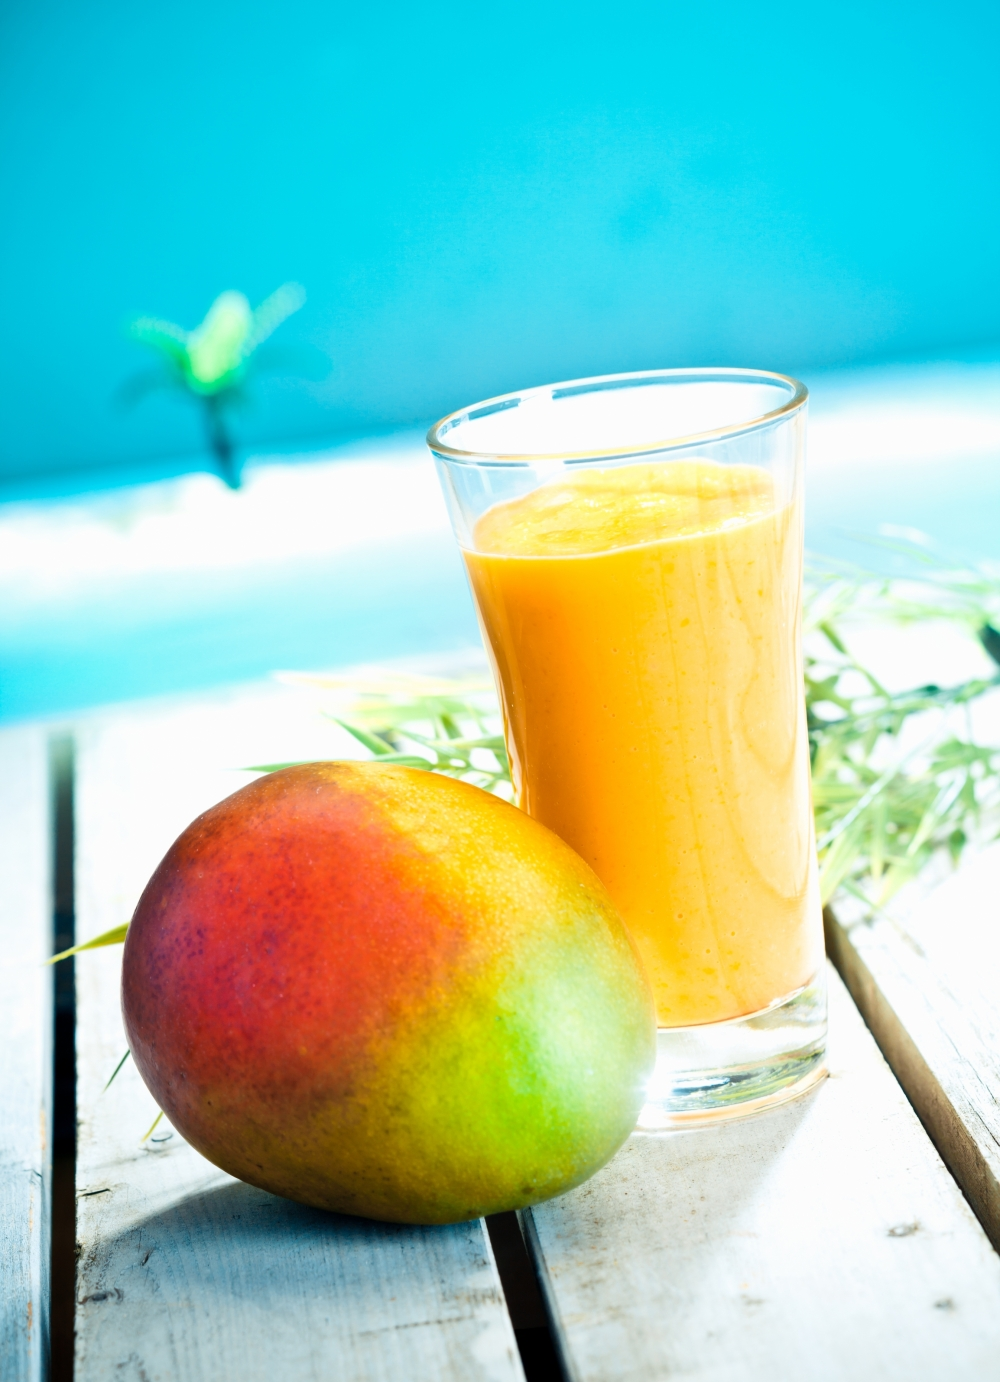 Papaya Mango and Carrot Nutribullet Recipe